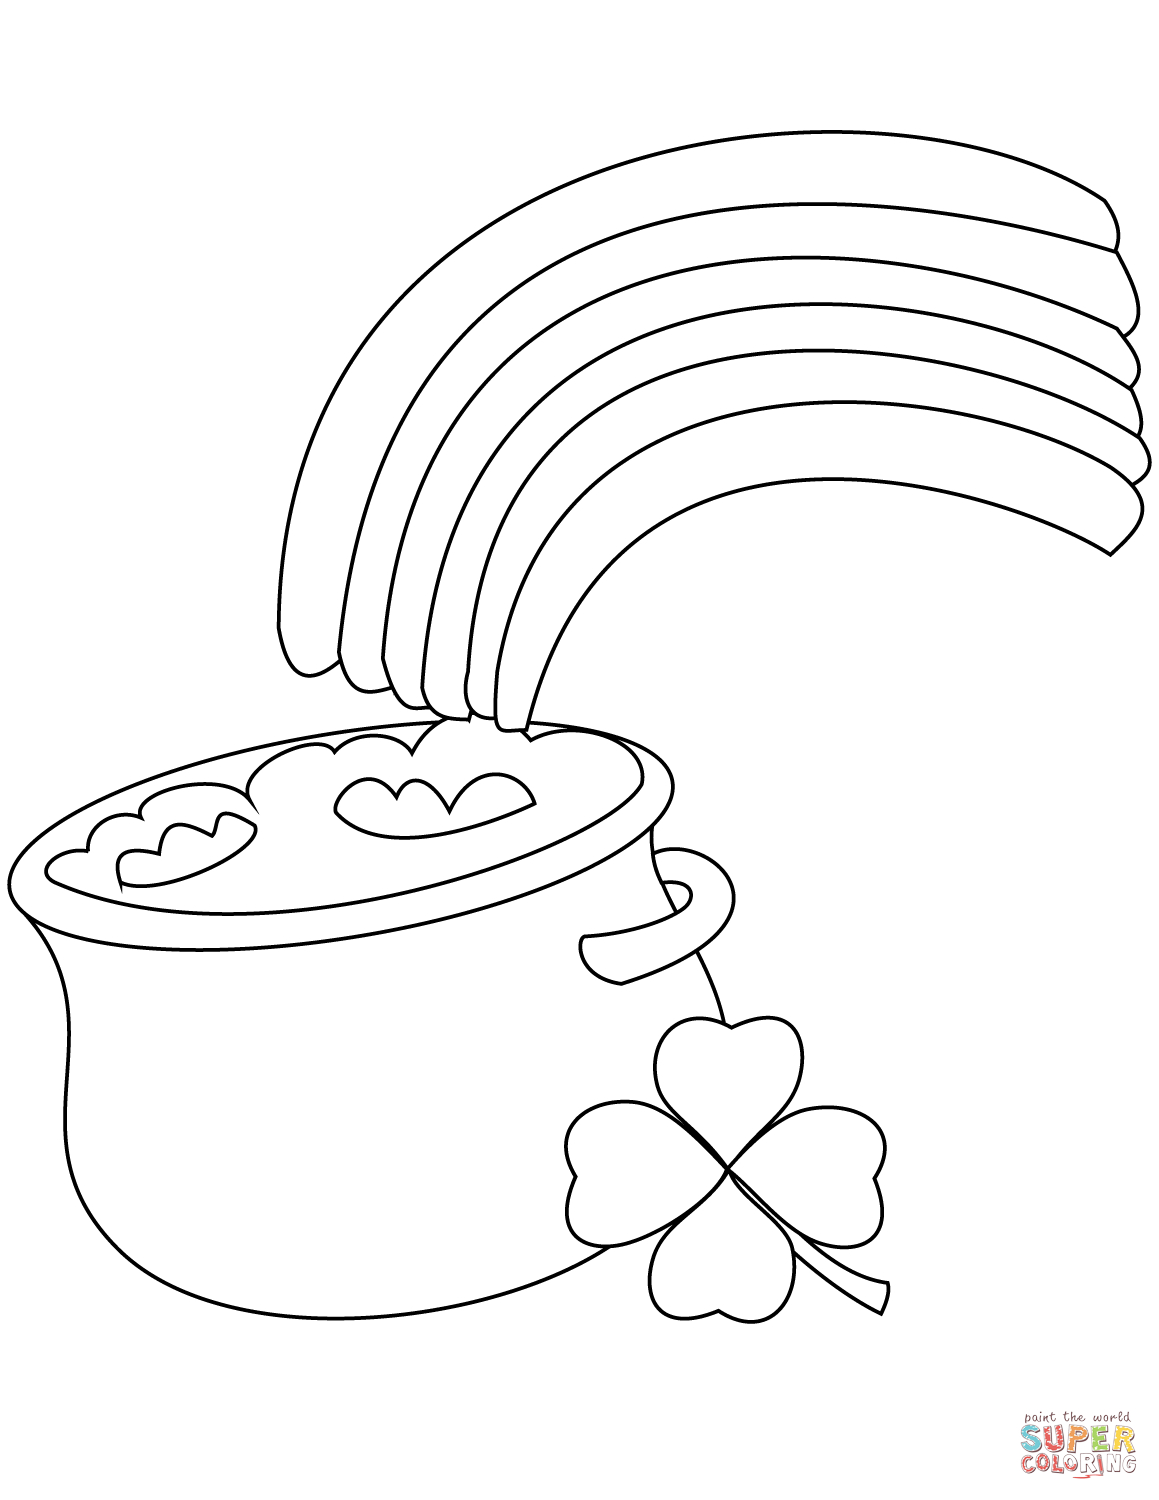 Rainbow And Pot Of Gold Coloring Page   Free Printable Coloring Pages - Free Printable Pot Of Gold Coloring Pages